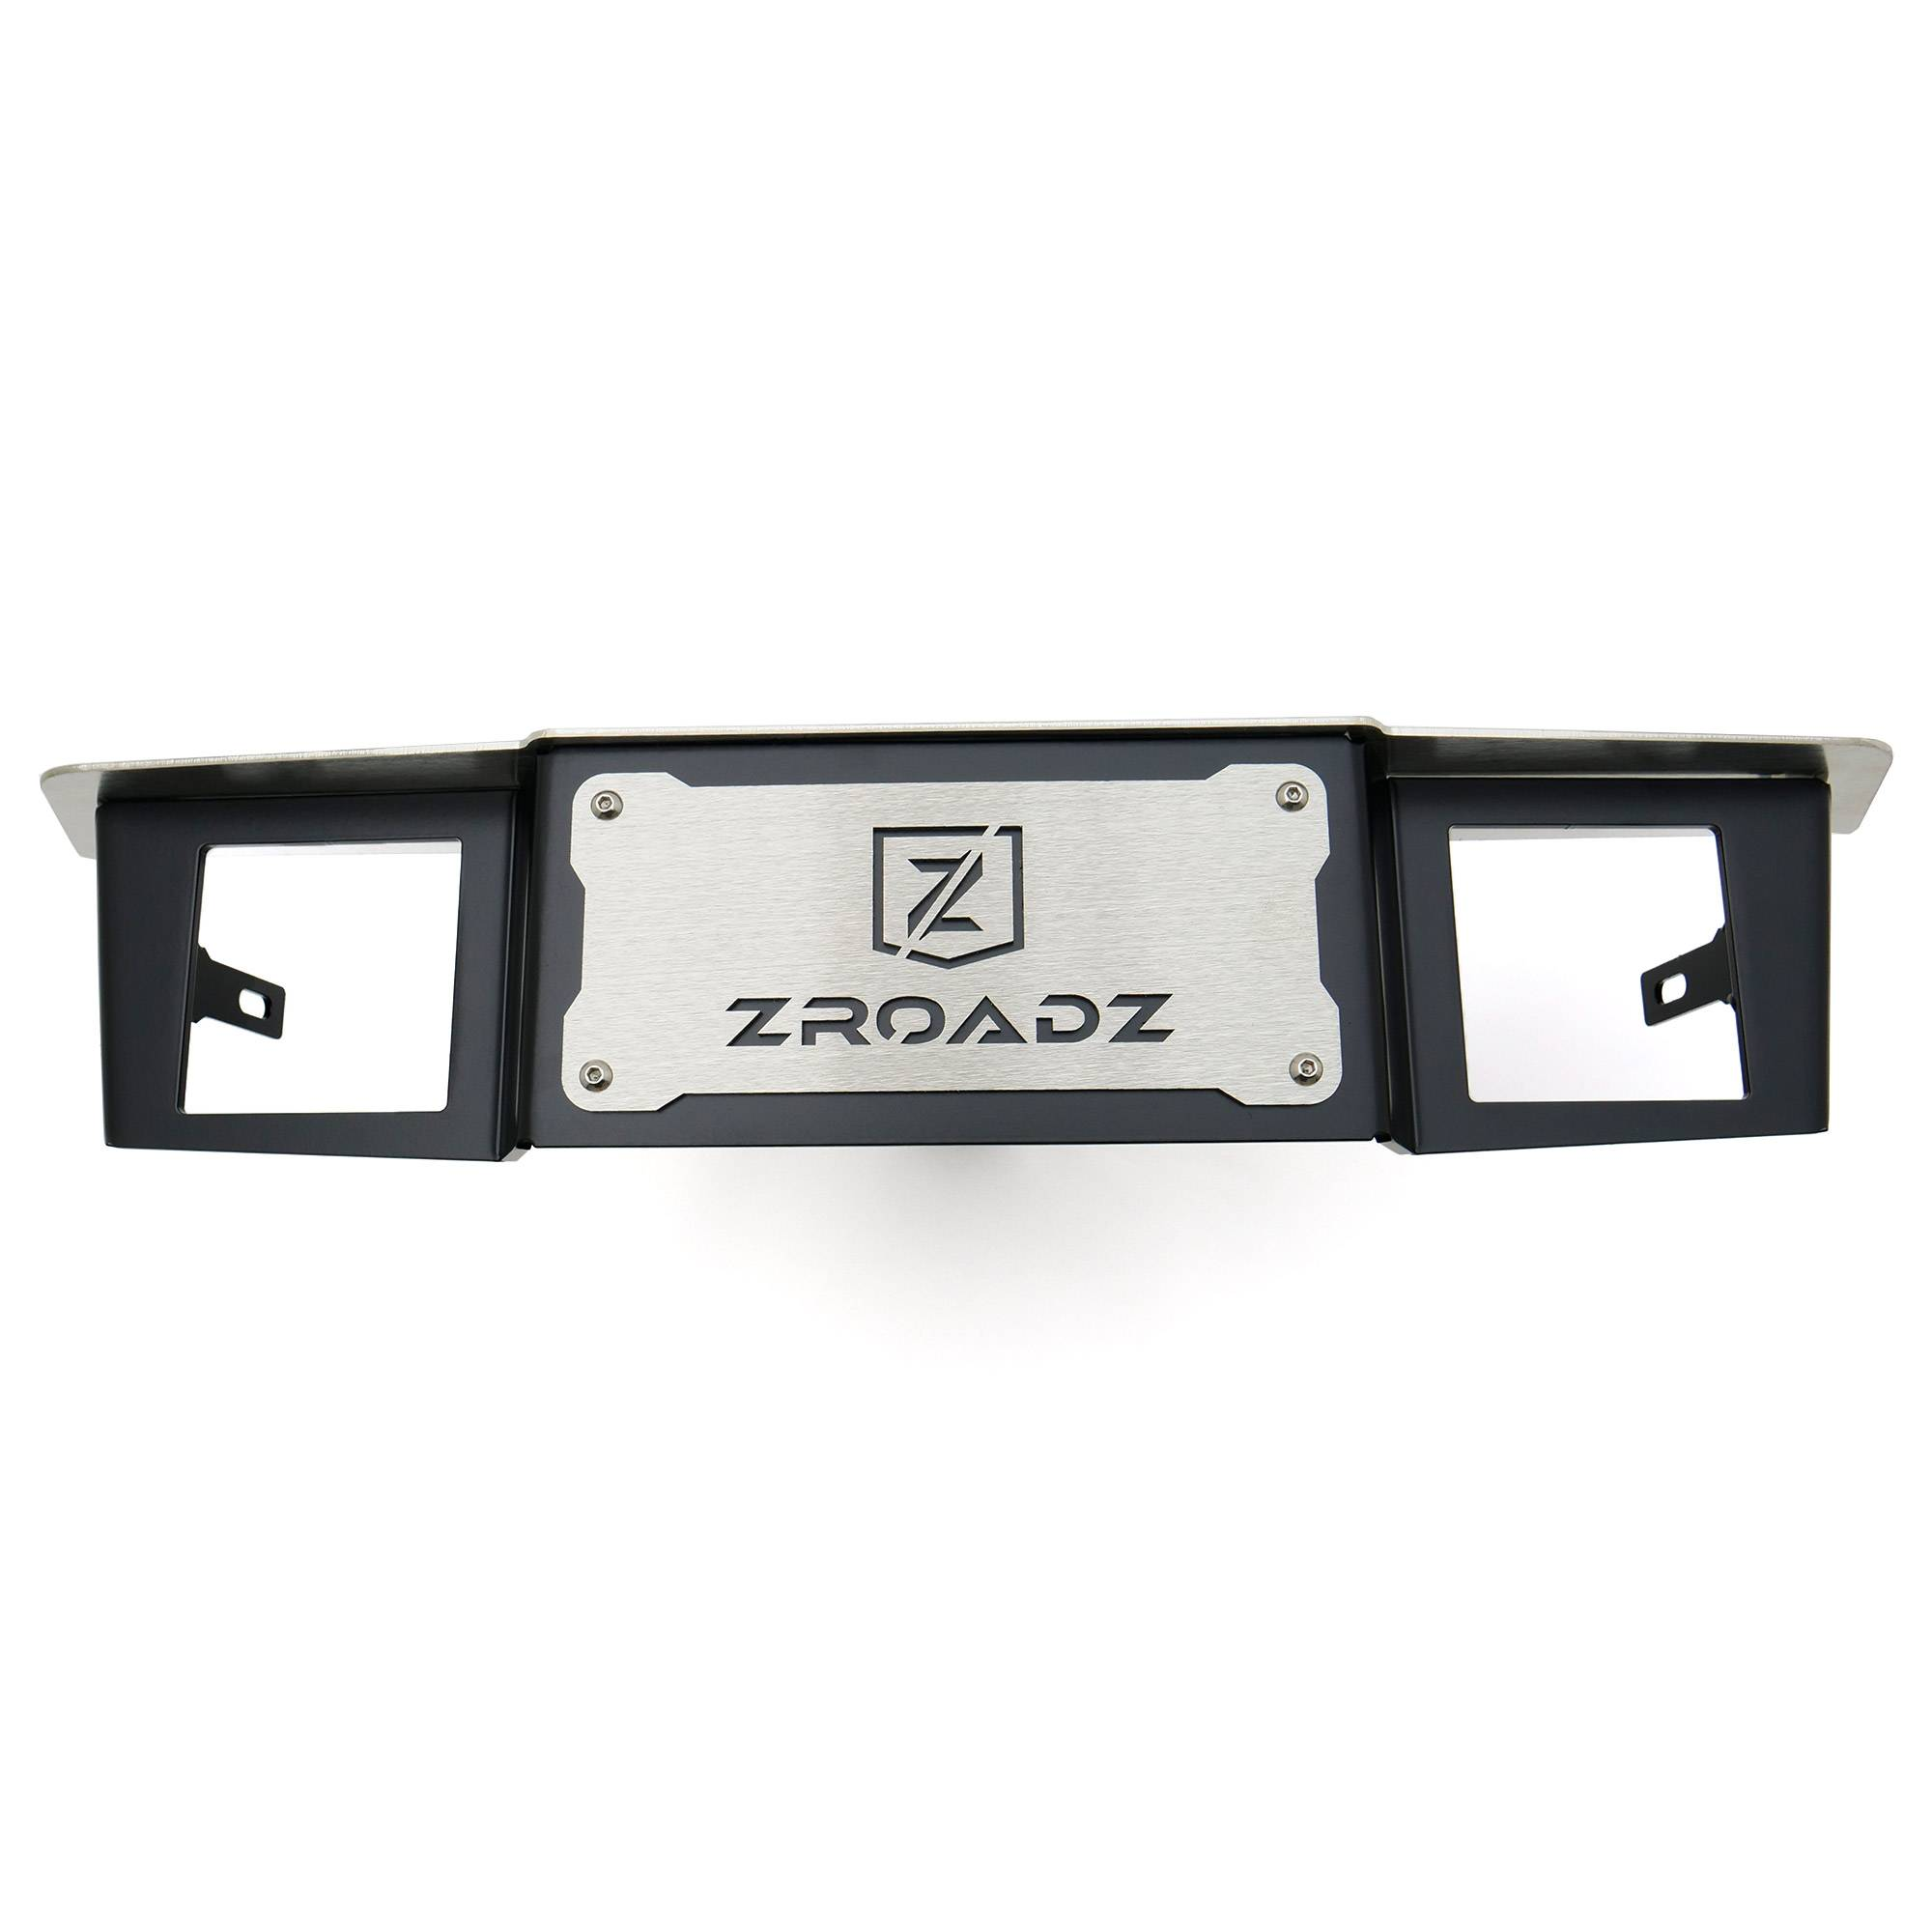 ZROADZ OFF ROAD PRODUCTS - Universal Hitch Step LED Bracket 2 Inch Hitch Receiver, to mount (2) 3 Inch LED Pod Lights - PN #Z390010